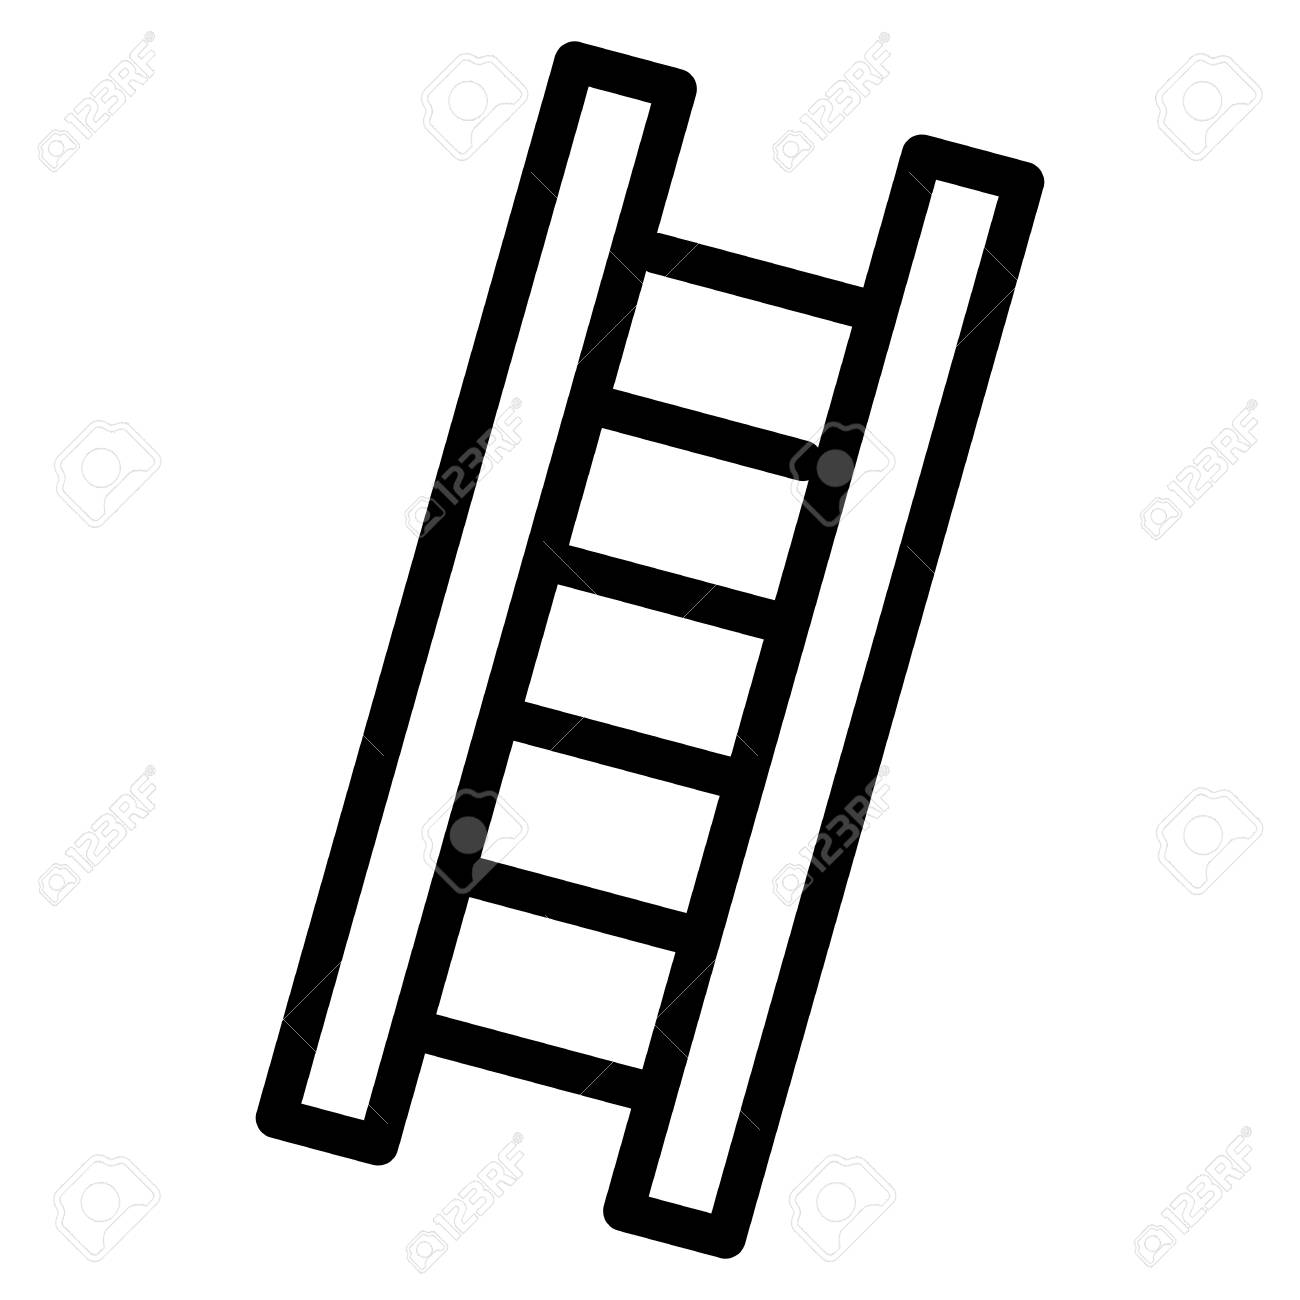 Ladder simple vector icon. Black and white illustration of ladder.